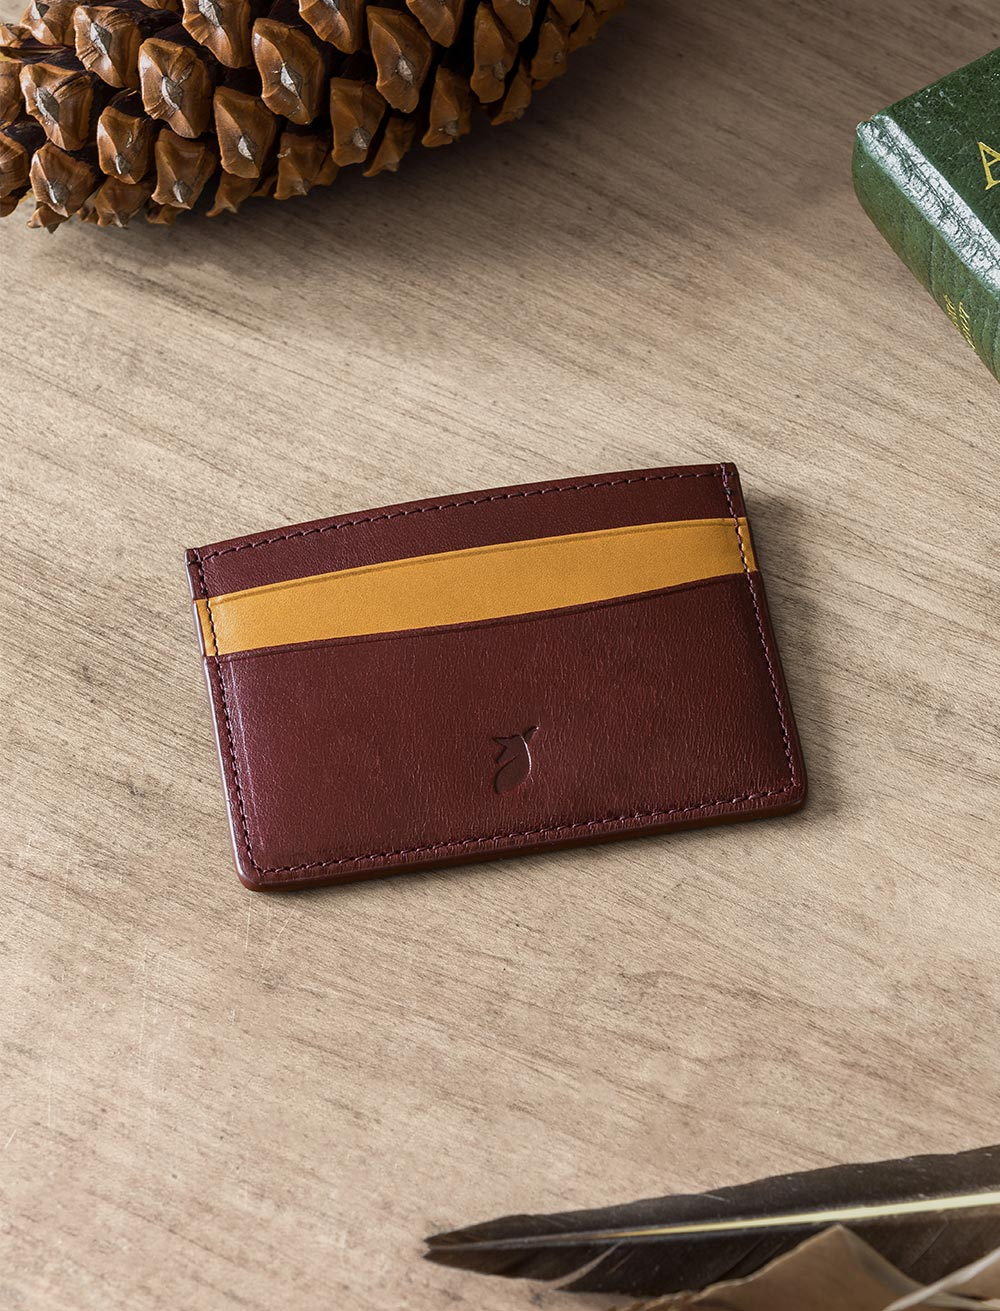 Card holder - Burgundy and Cream